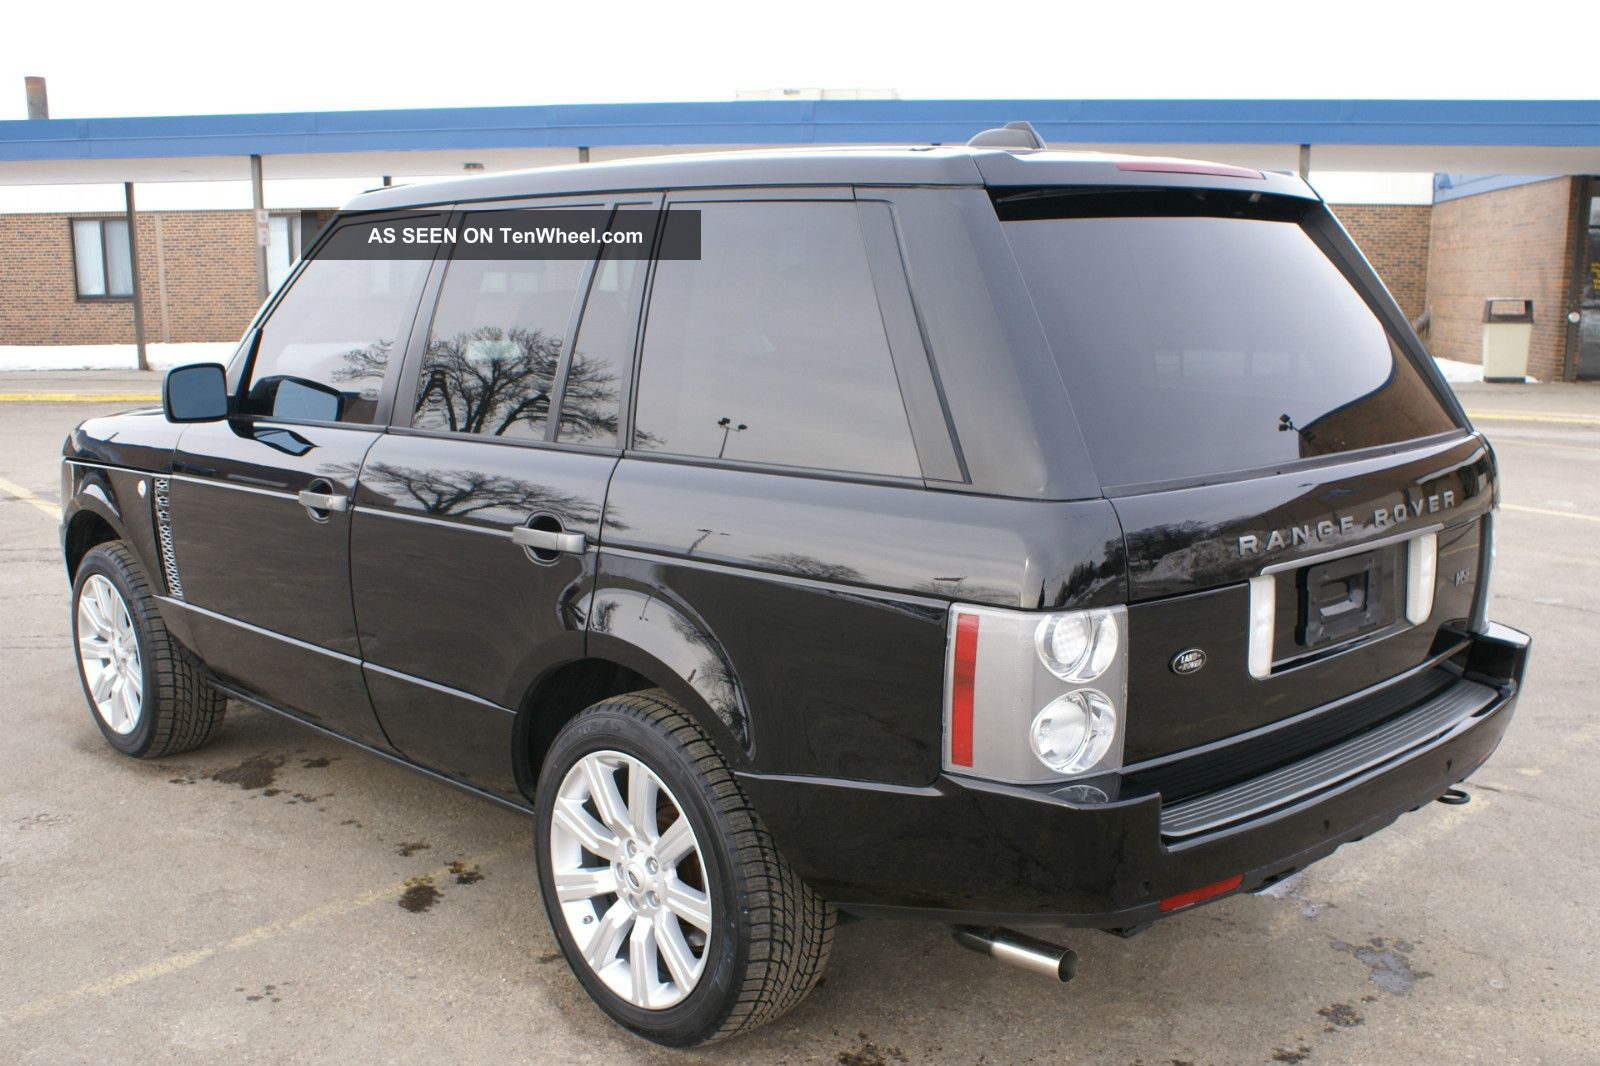 2006 range rover hse. Black Bedroom Furniture Sets. Home Design Ideas